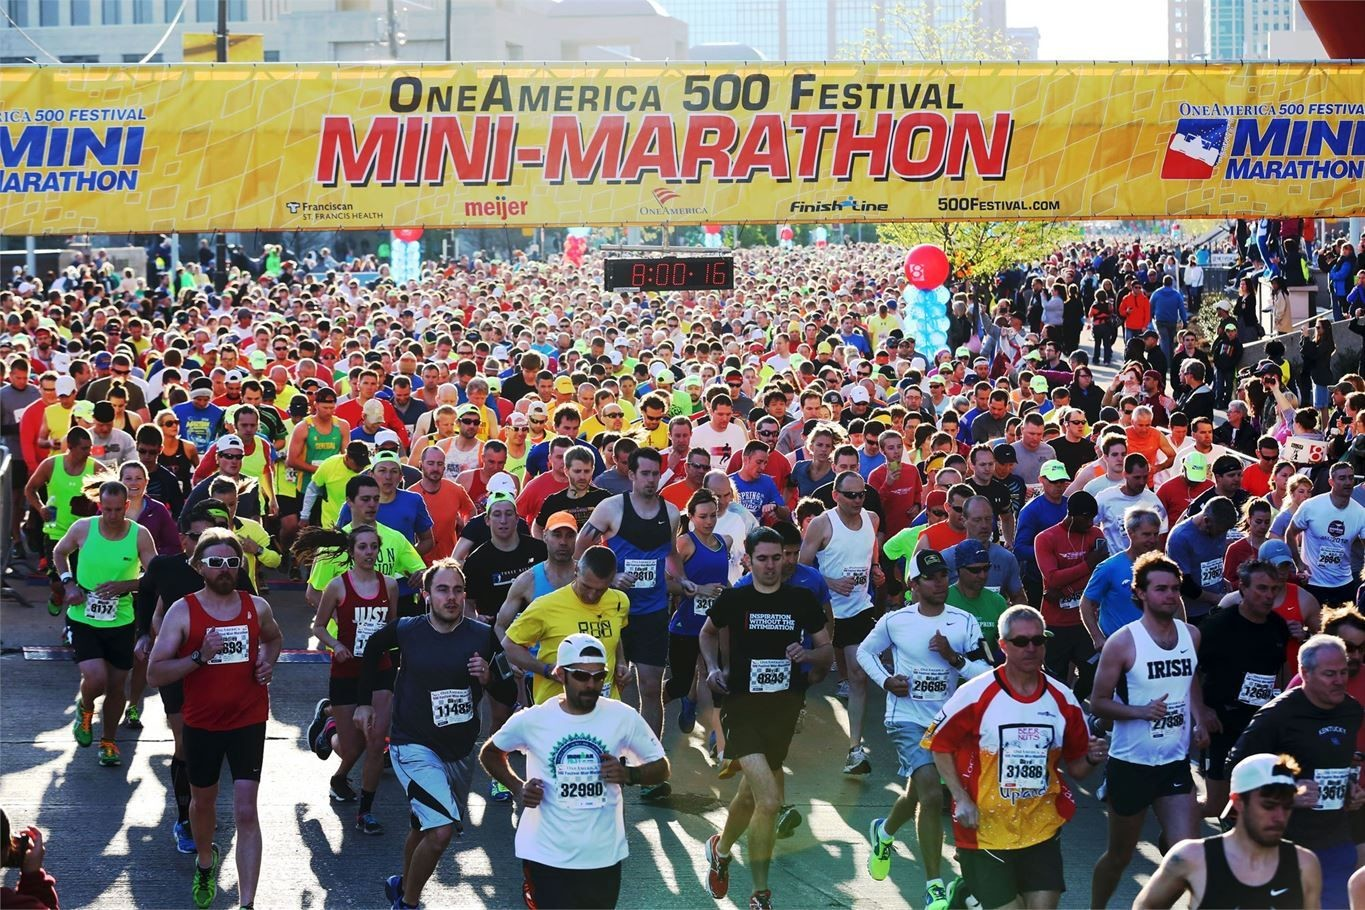 A word from the OneAmerica 500 Festival Mini-Marathon